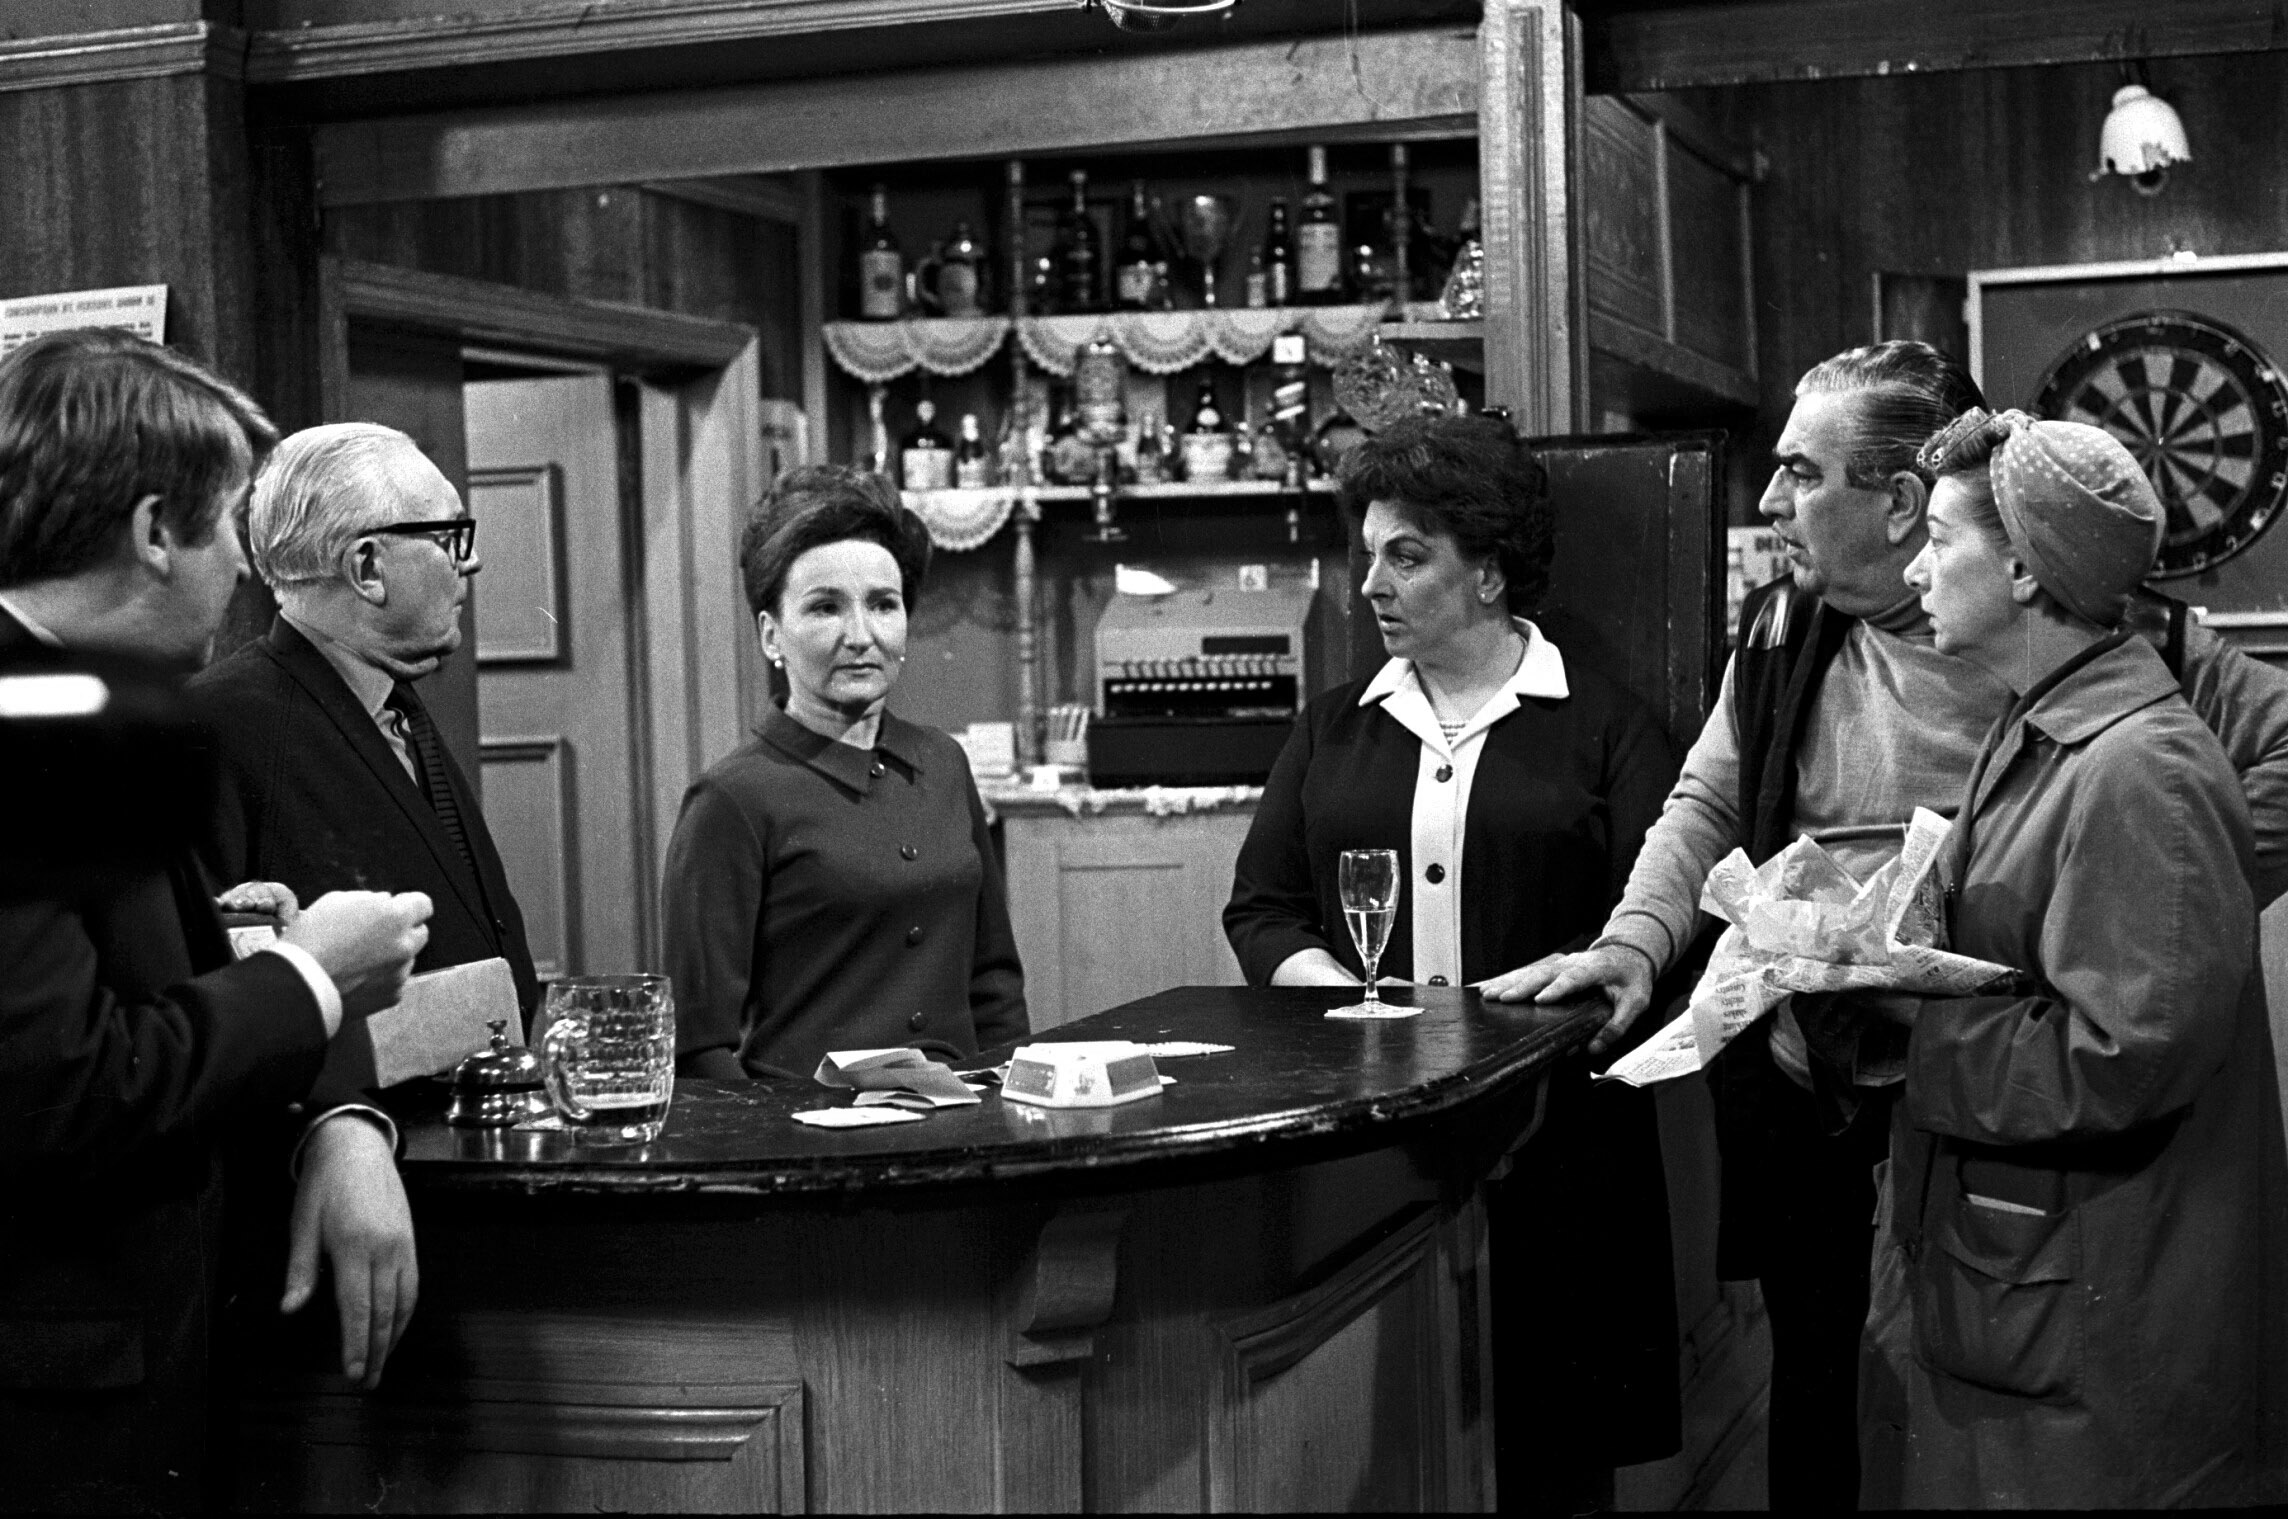 Editorial use only. Exclusive - Premium Rates Apply. Call your Account Manager for pricing. Mandatory Credit: Photo by ITV/REX/Shutterstock (669448pz) 'Coronation Street' TV - 1969 - L-R Len Fairclough [Peter Adamson], Jack Walker [Arthur Leslie], Emily Nugent [Eileen Derbyshire], Betty Turpin [Betty Driver], Stan Ogden [Bernard Youens] and Hilda Ogden [Jean Alexander] in the Rovers. ITV ARCHIVE